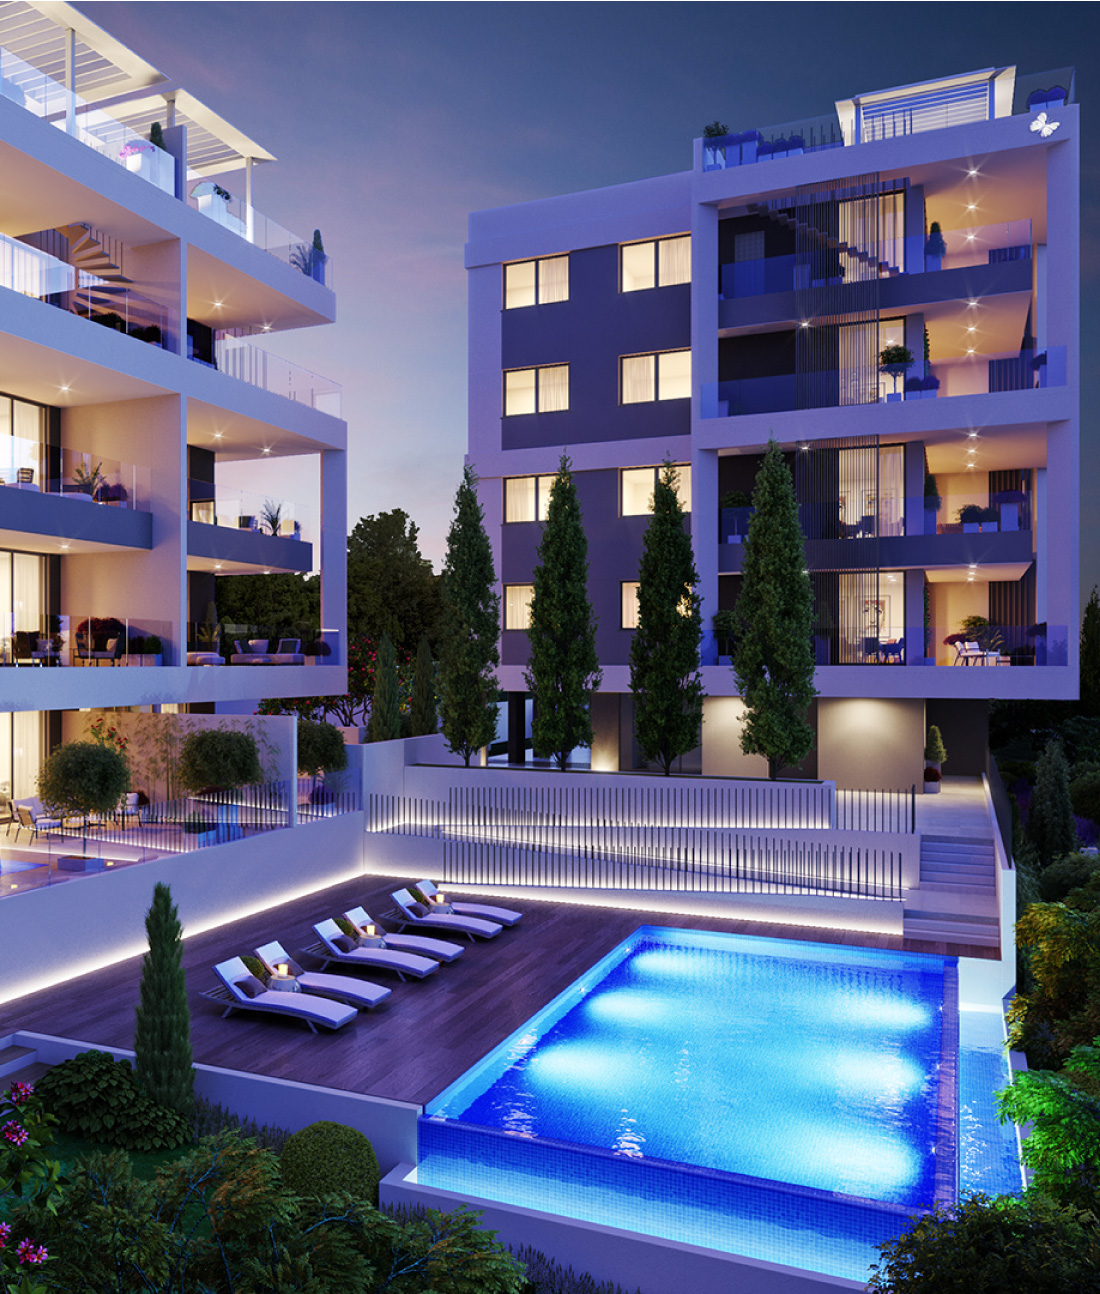 barbican, barbicanheights, limassol, cyprus, cyprusproperties, imperioproperties